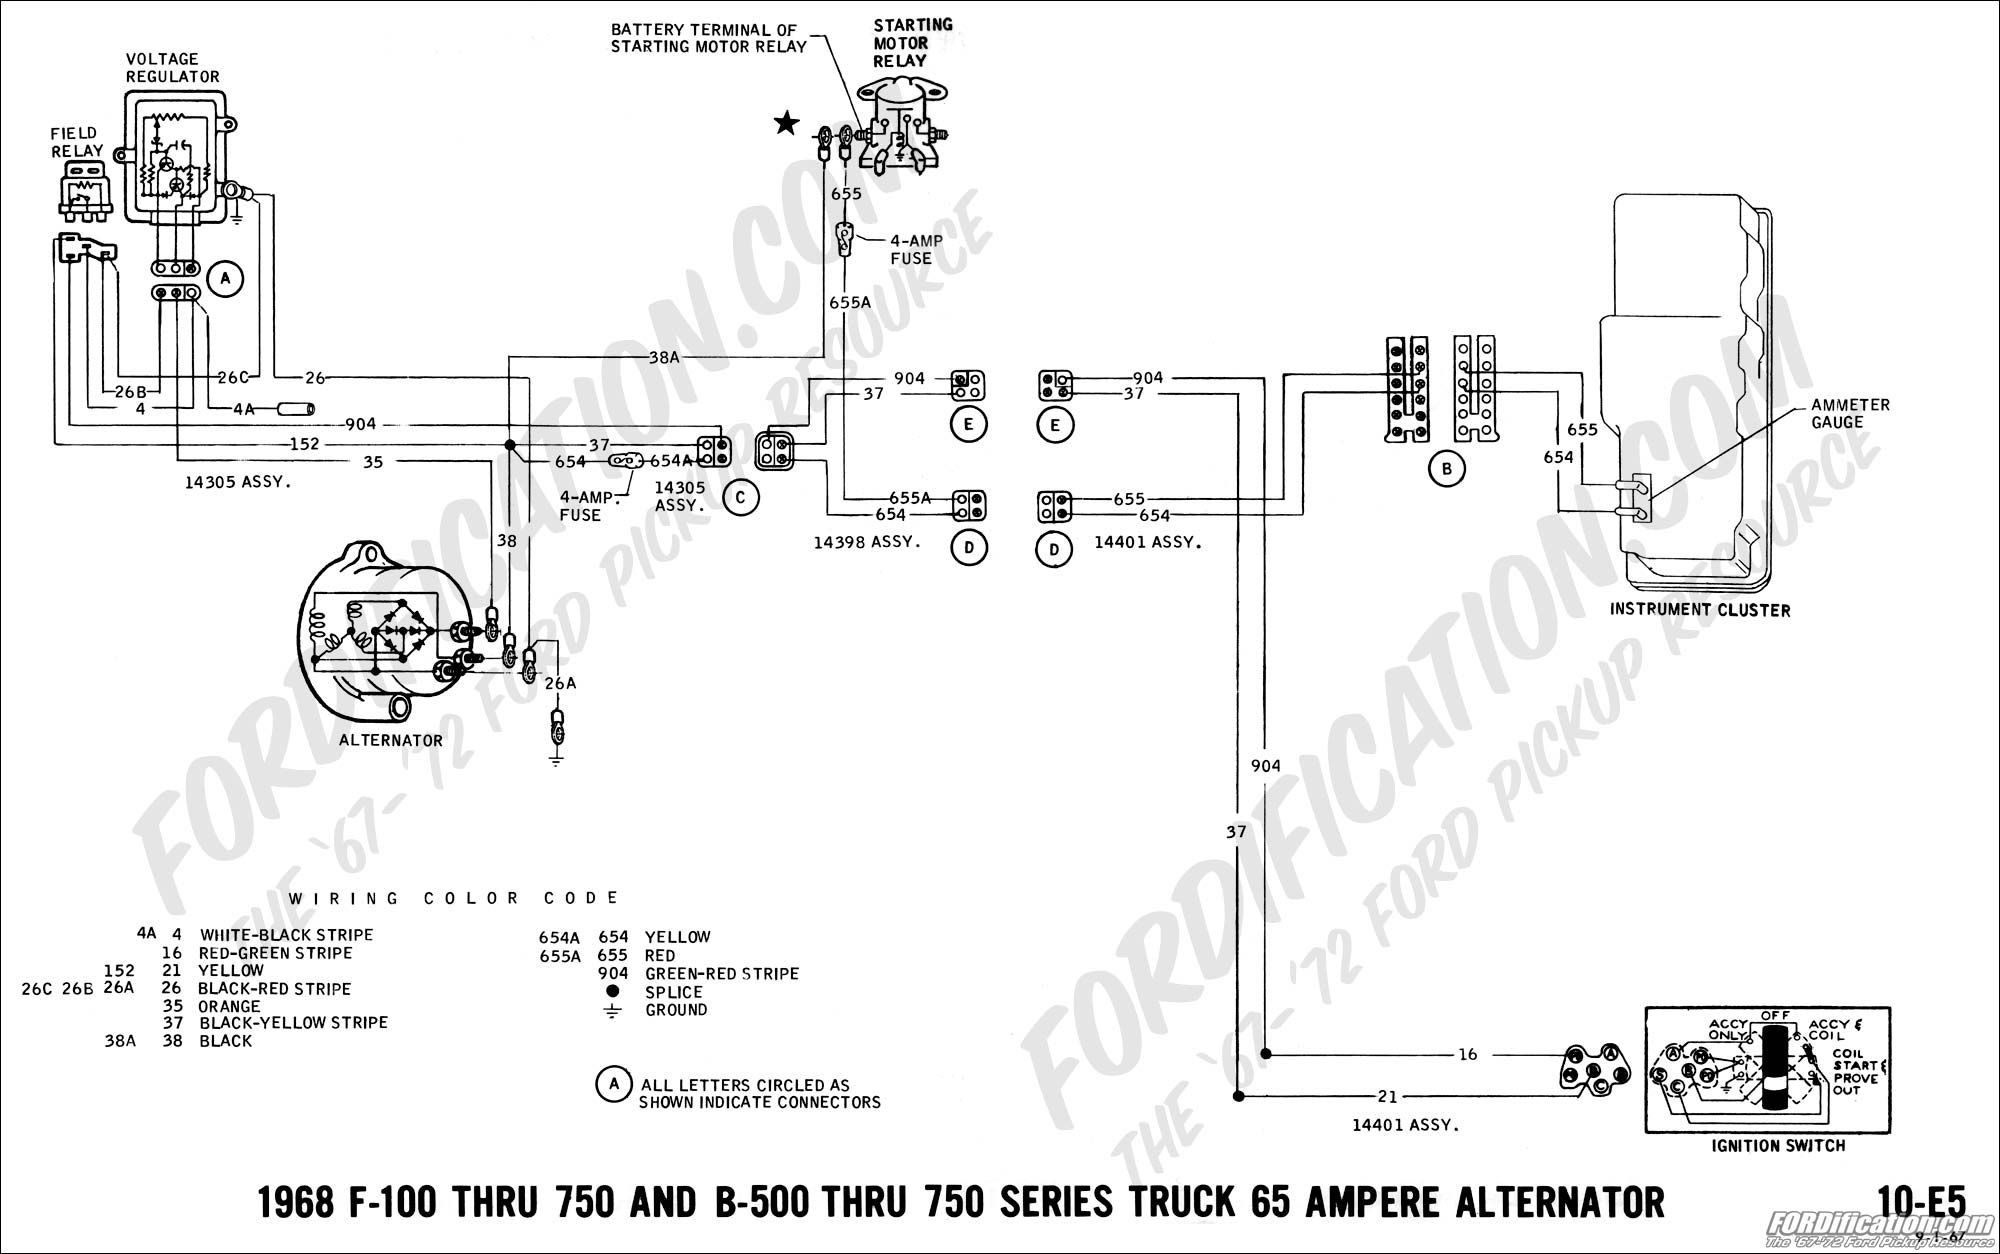 Inspirational Wiring Diagram For Leece Neville Alternator